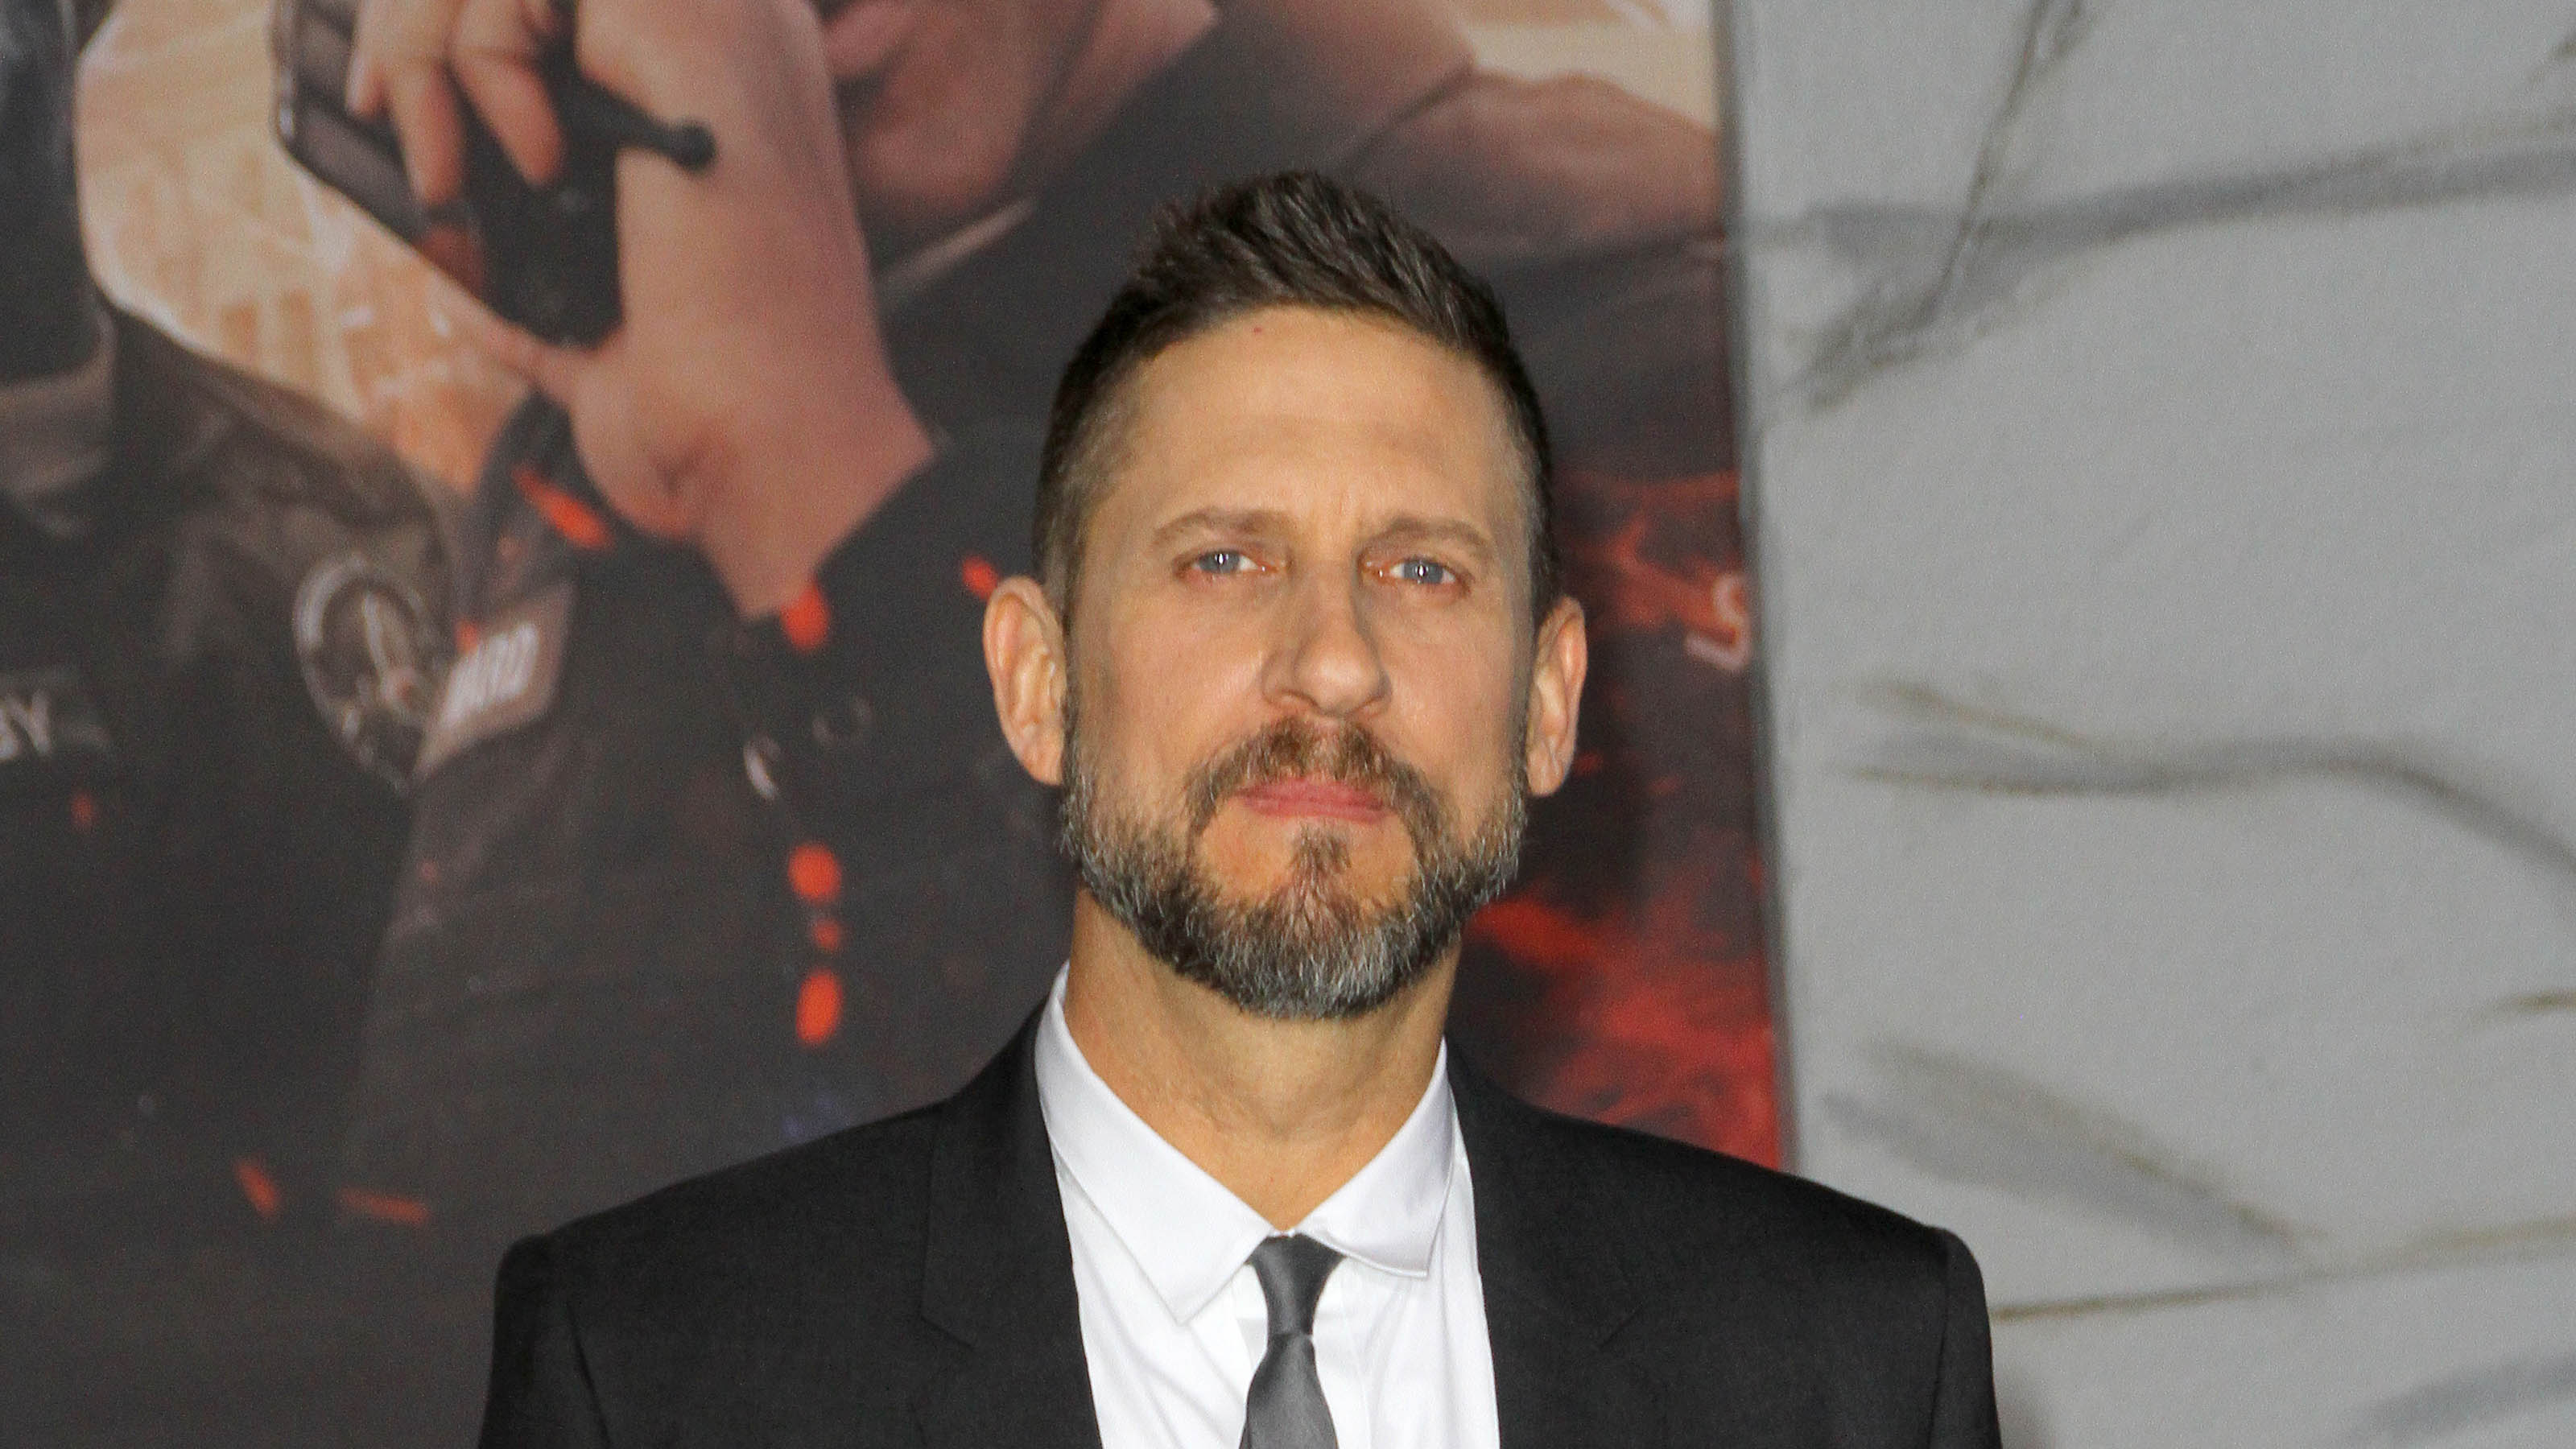 David Ayer confirms The Suicide Squad is not a sequel to his film ...